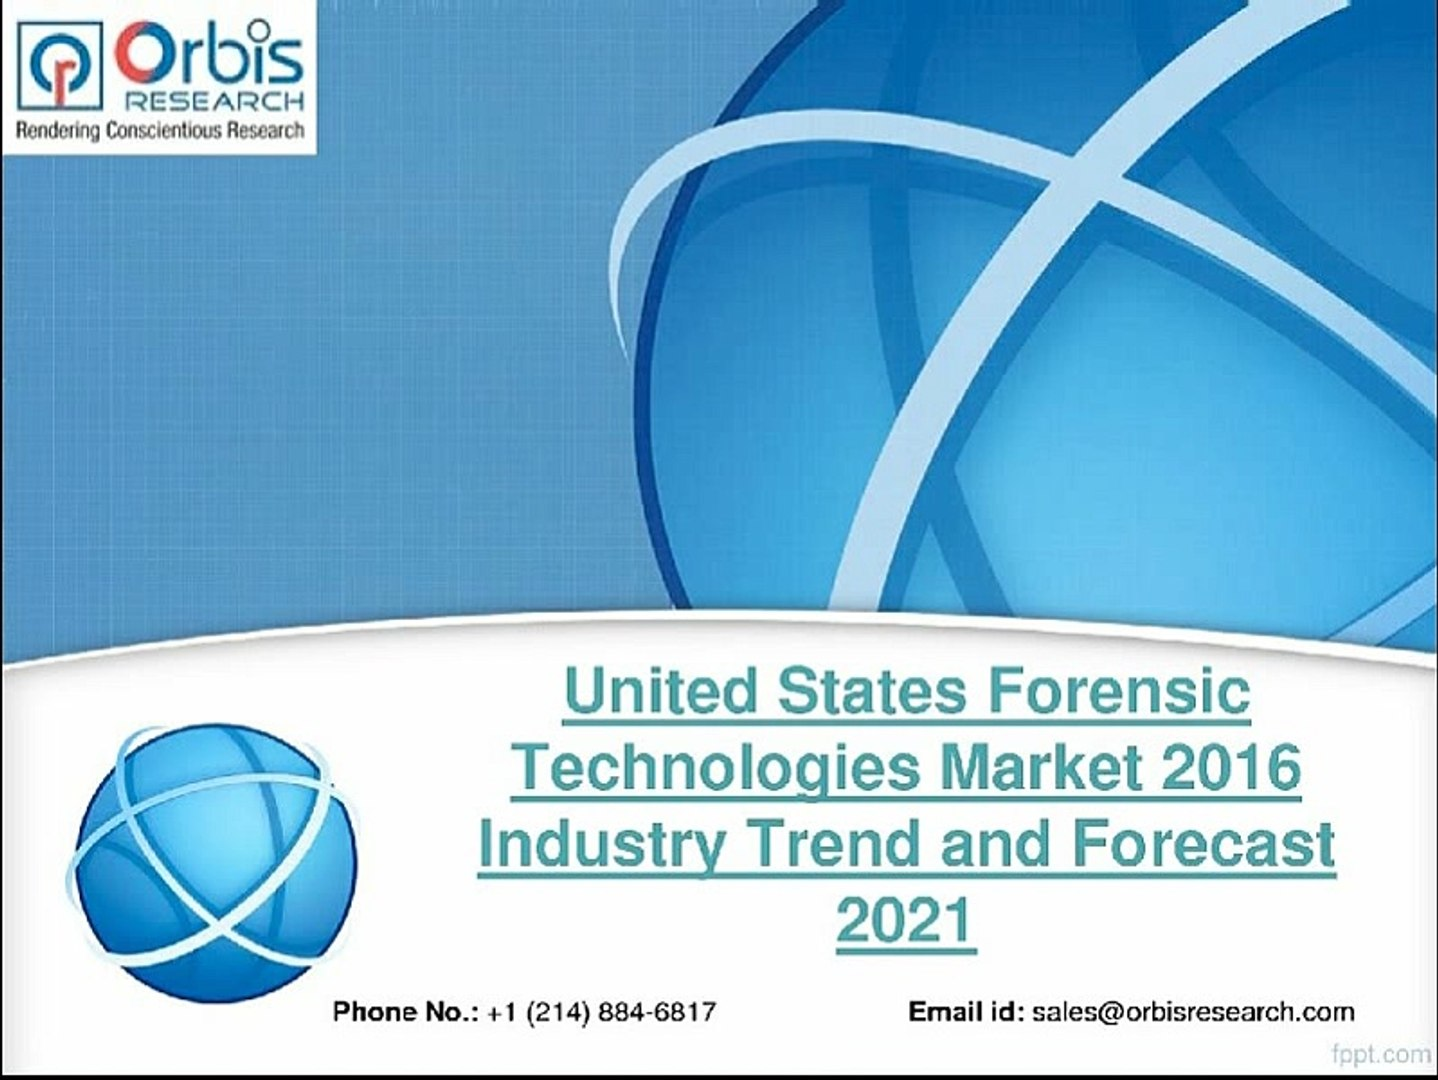 Latest News on United States Forensic Technologies Market 2016